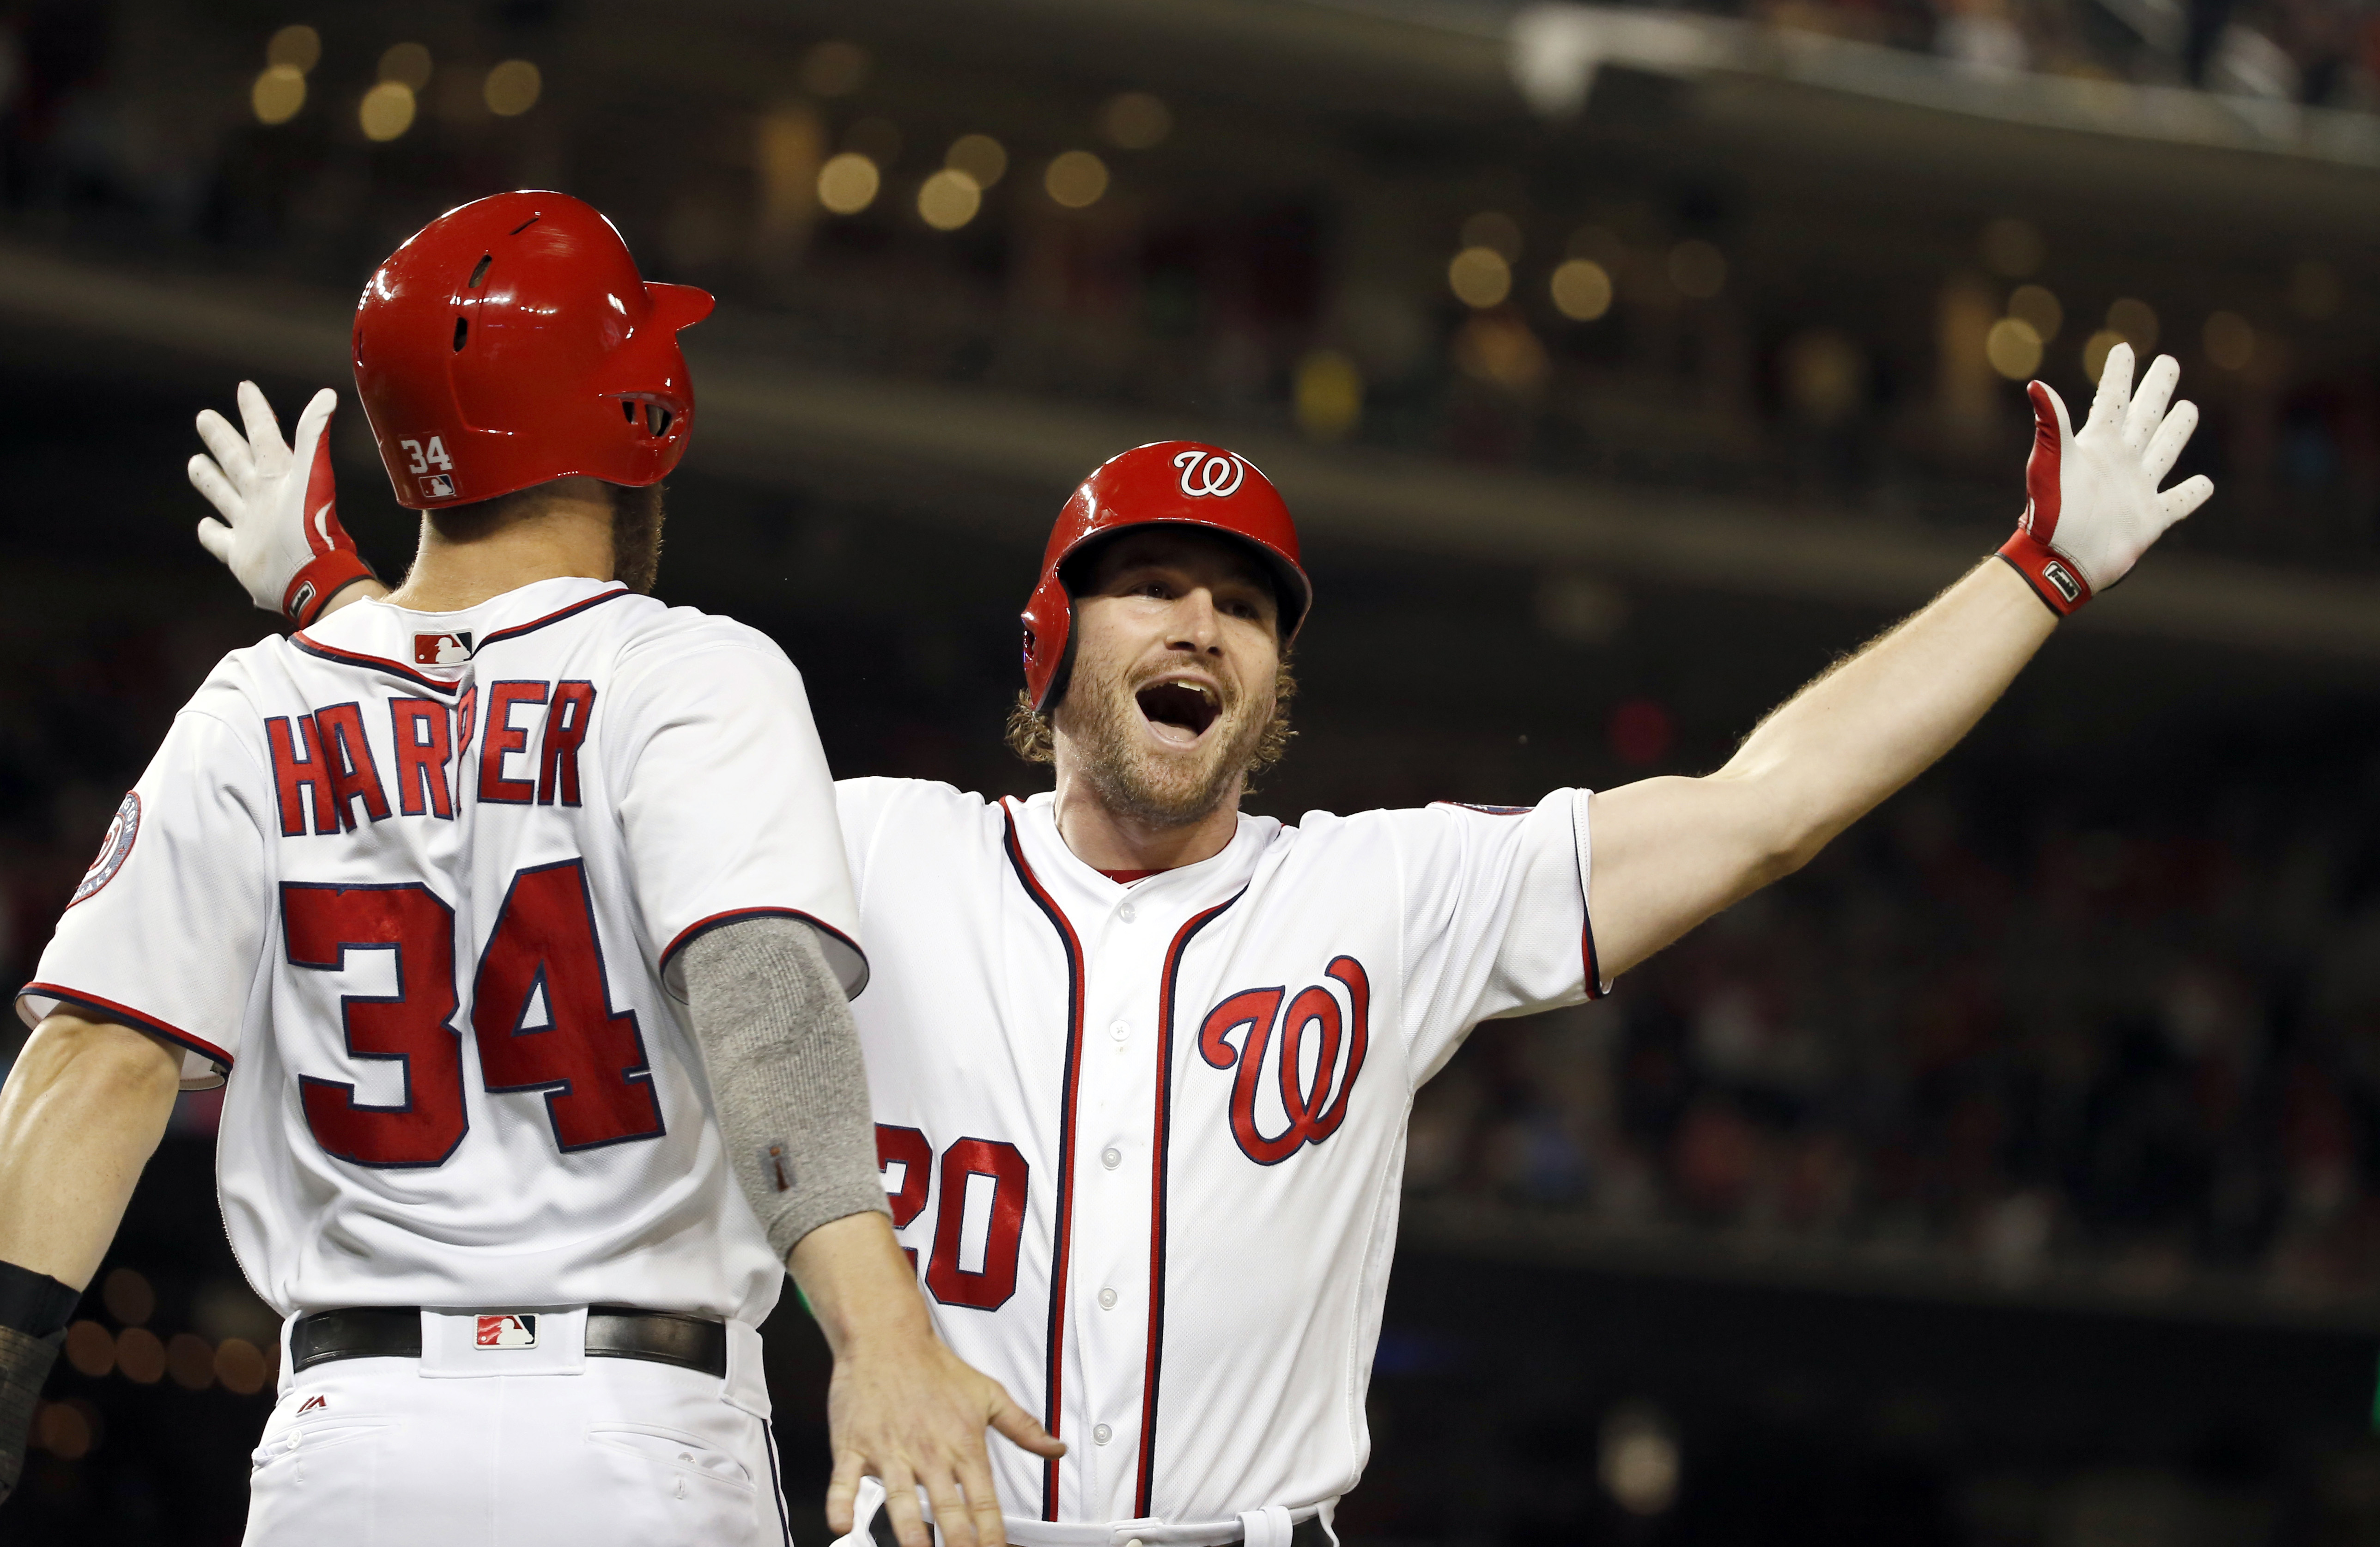 FILE - In this June 29, 2016, file photo, Washington Nationals' Bryce Harper (34) celebrates with Daniel Murphy (20) after Murphy's two-run homer in the eighth inning of a baseball game against the New York Mets at Nationals Park in Washington. Texas' Ian